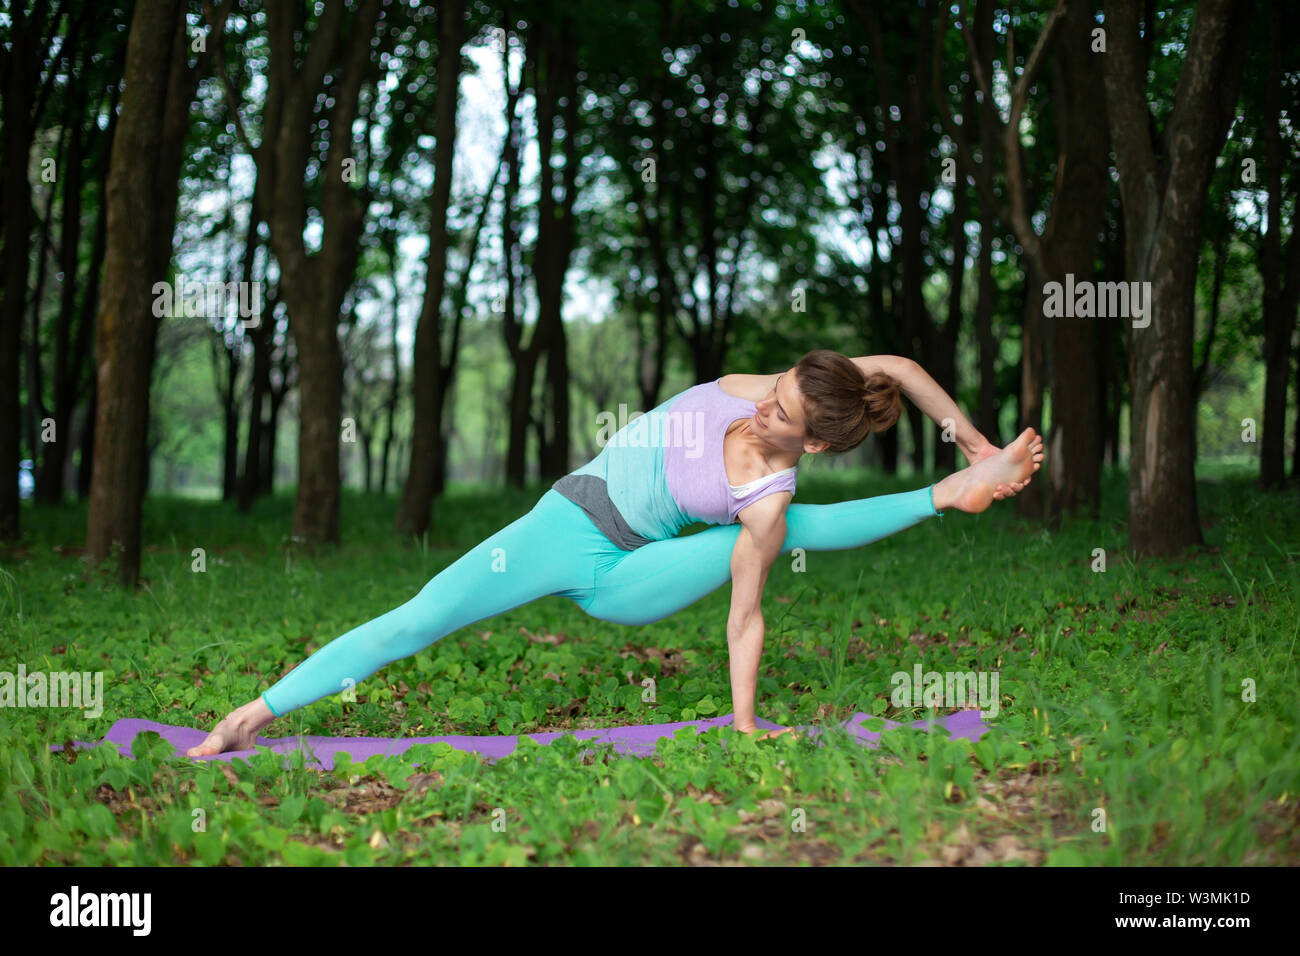 Thin brunette girl plays sports and performs beautiful and sophisticated yoga poses in a summer park. Green lush forest on the background. Woman doing - Stock Image